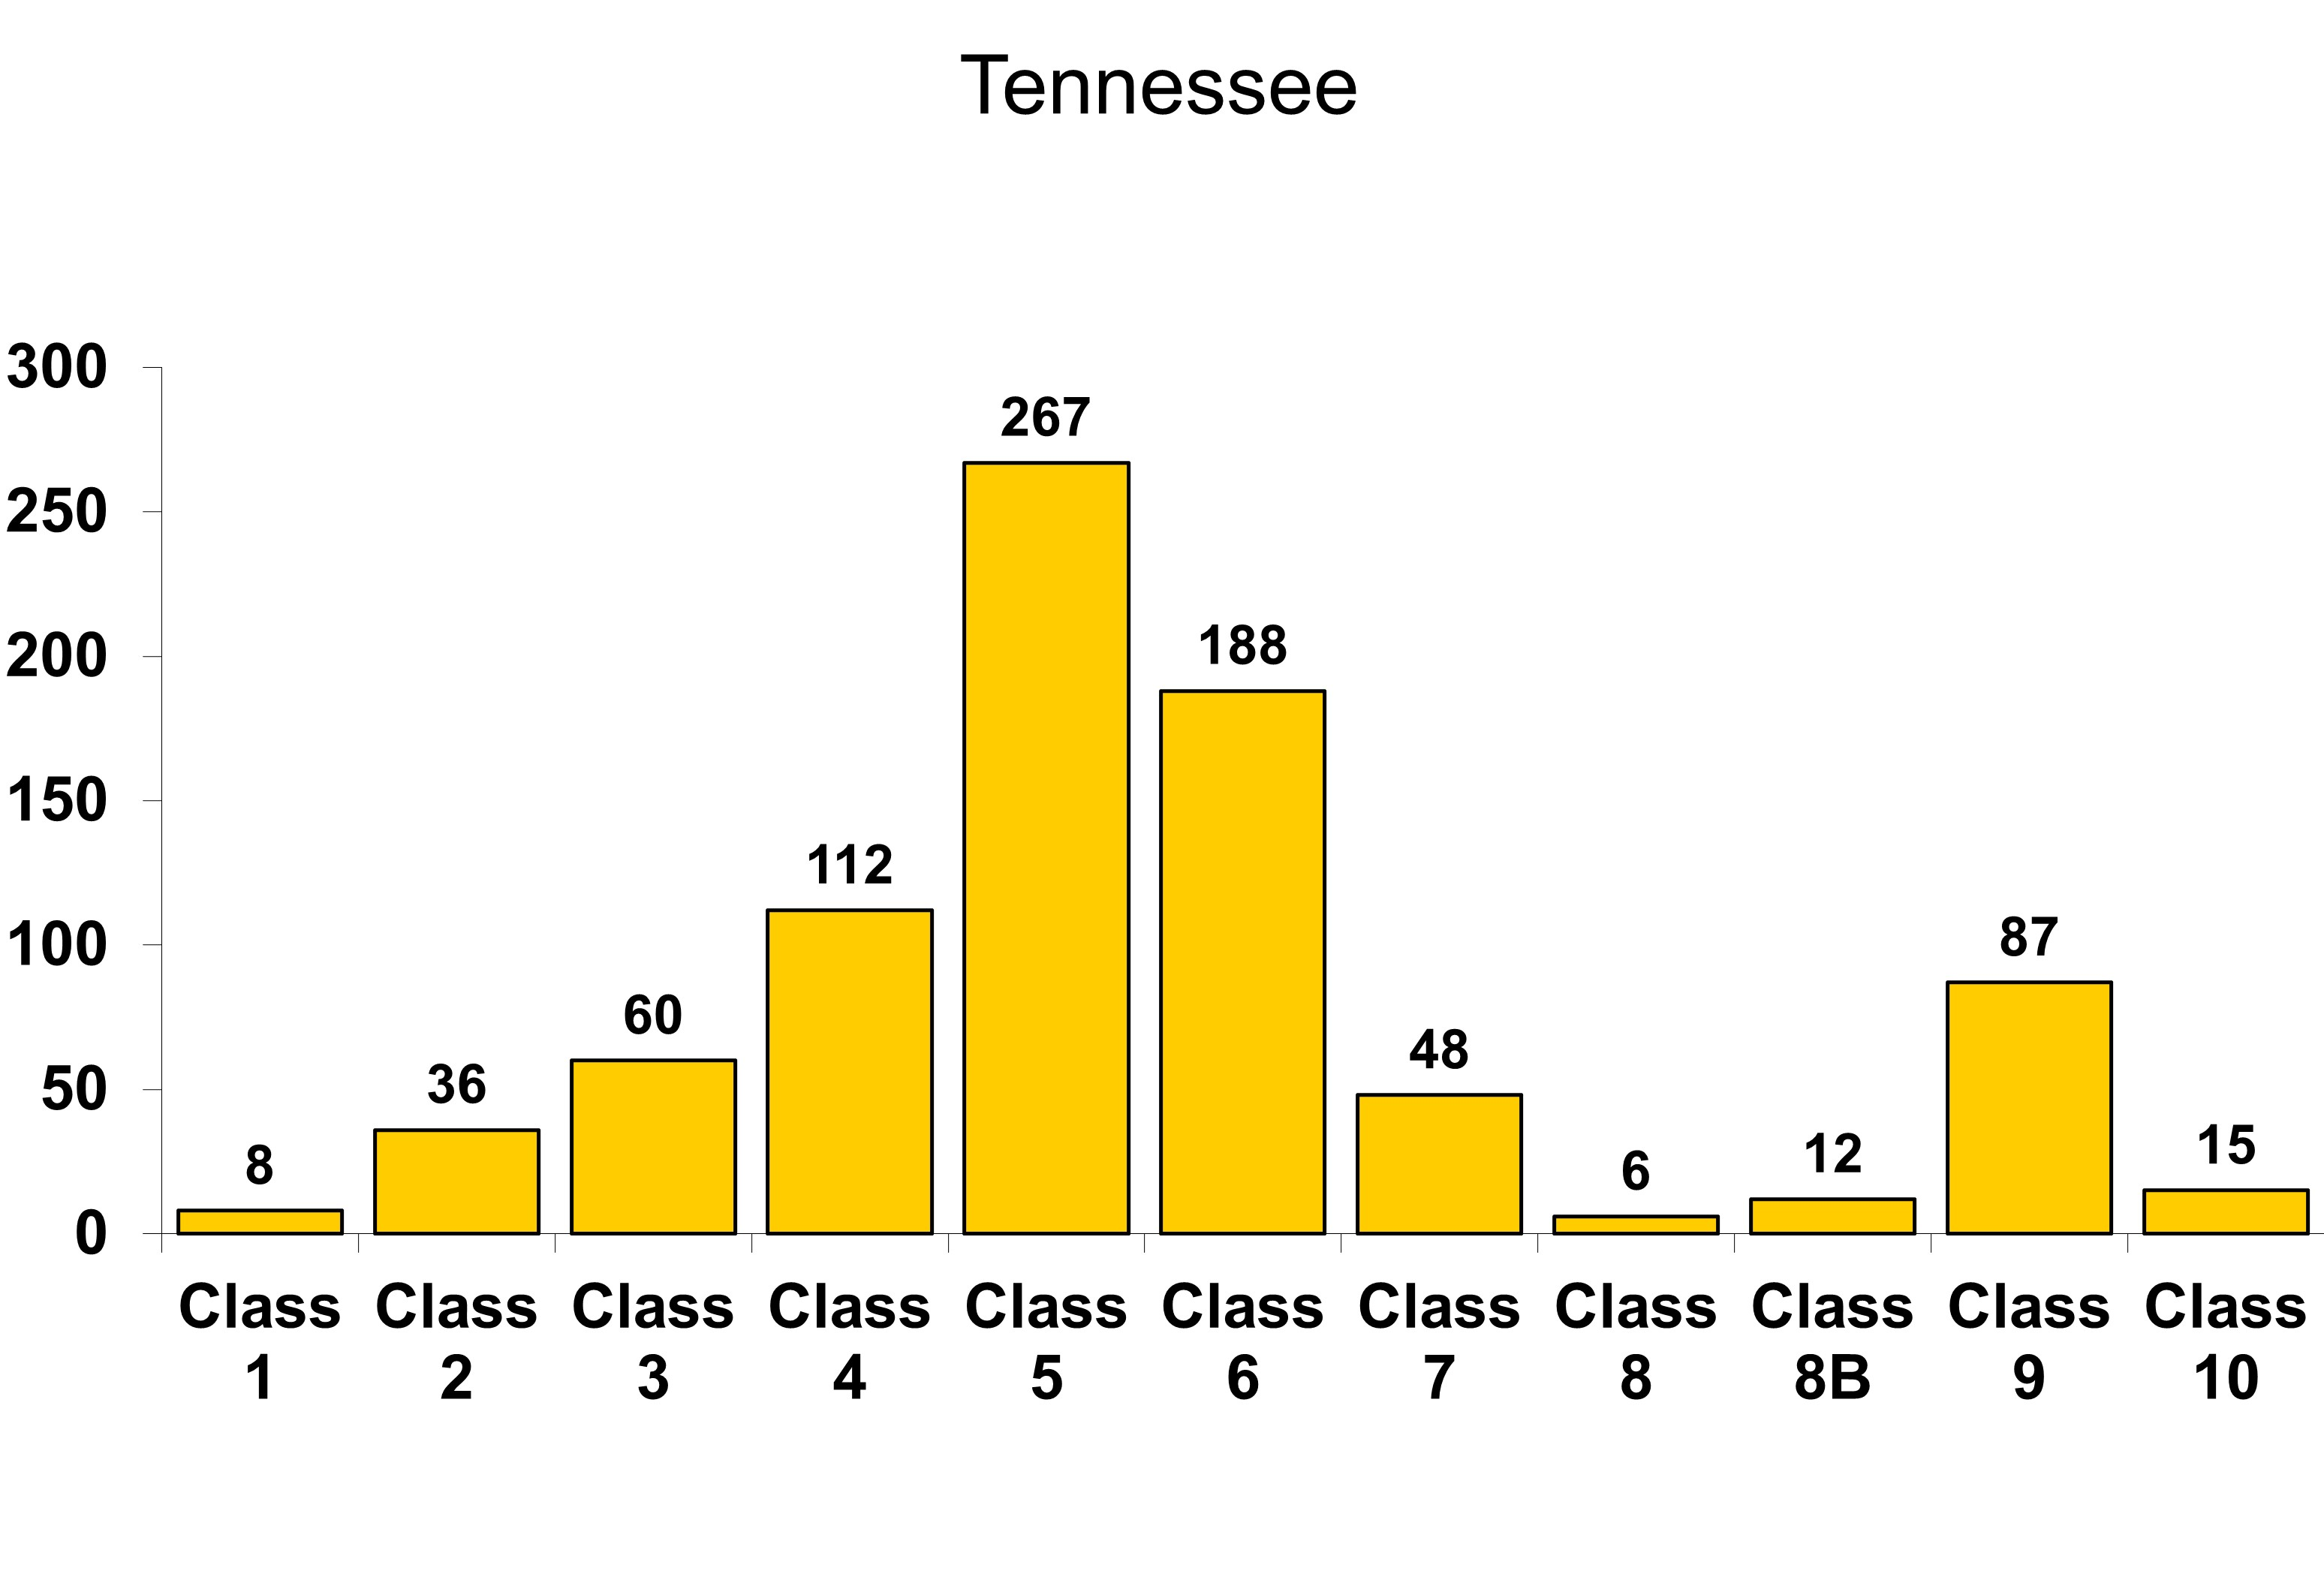 https://www.isomitigation.com/siteassets/graphs-ppc/imgs/tennessee.jpg